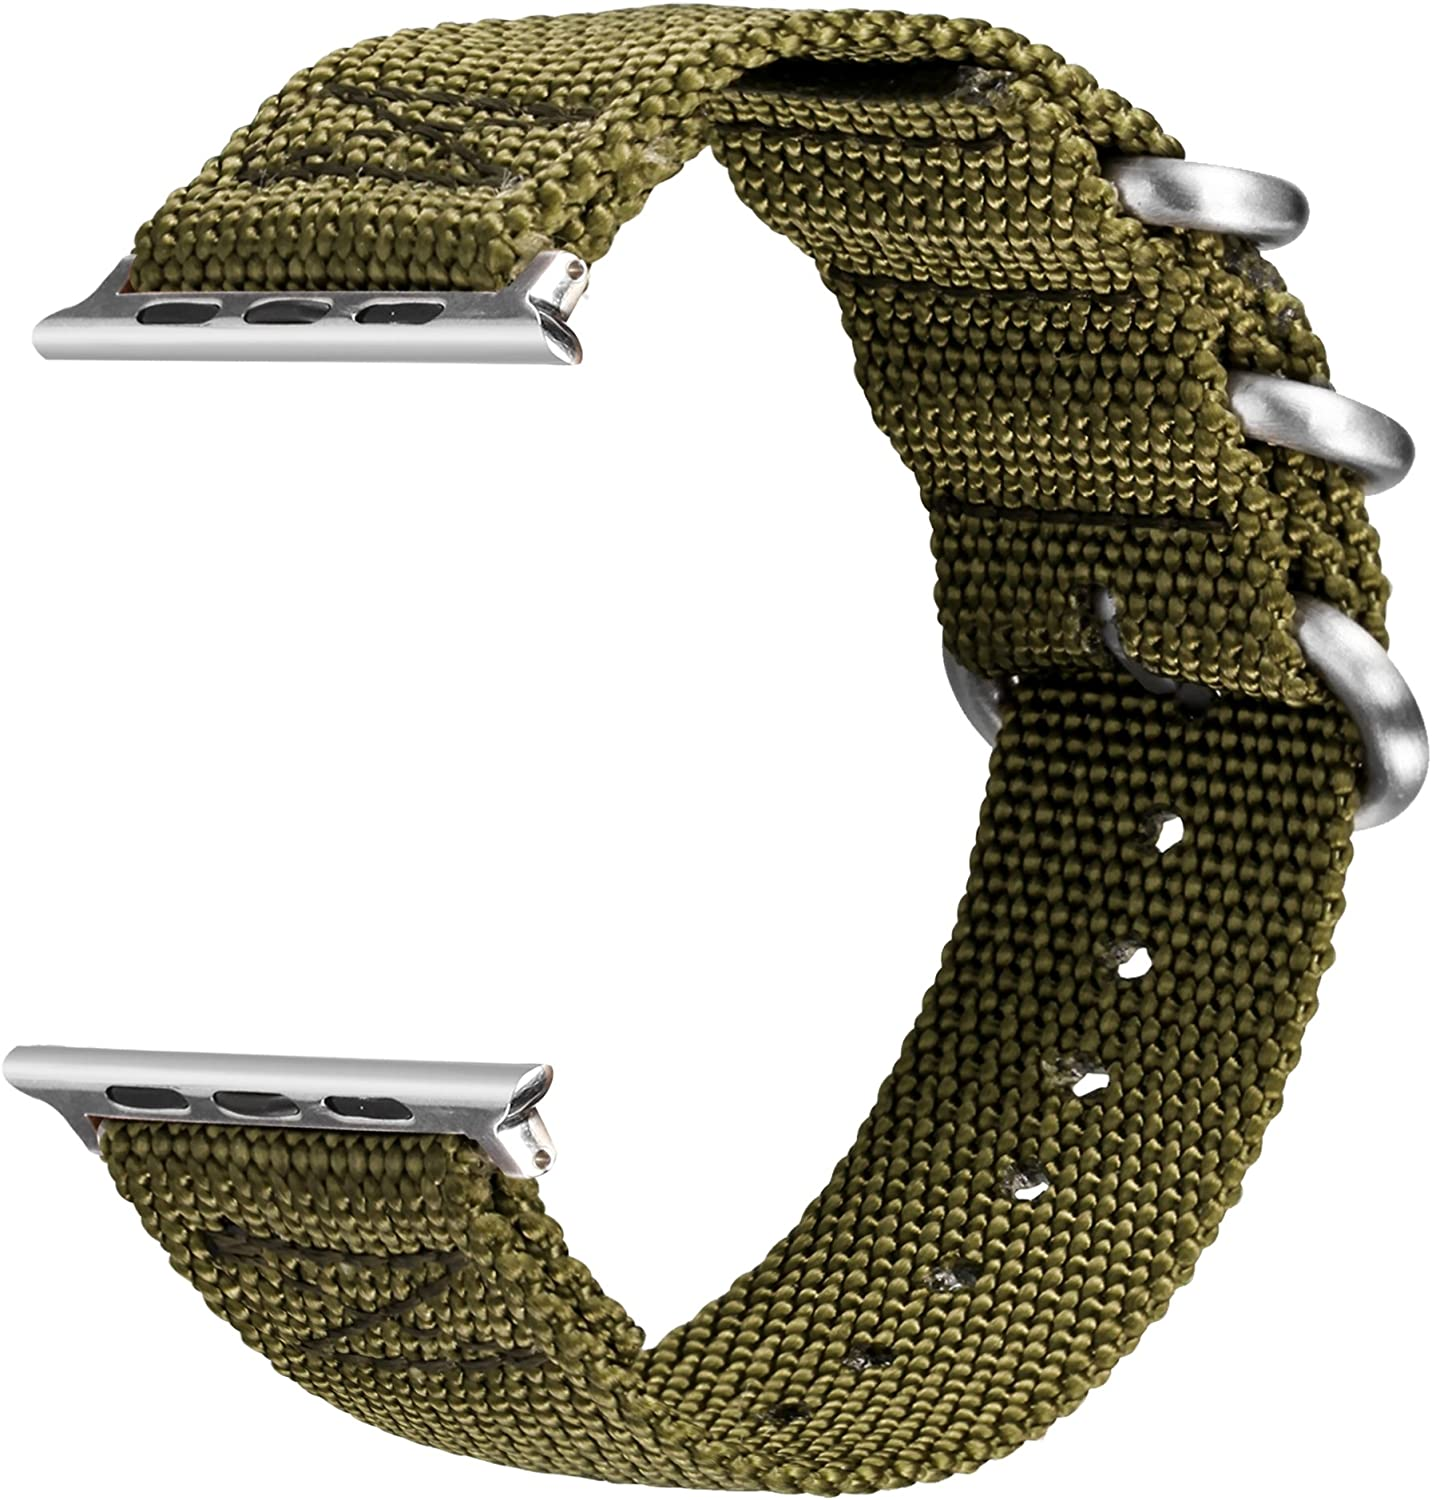 VIGOSS Bands for Apple Watch 44mm Band 42mm, Woven Nylon NATO iWatch Bands Soft Replacement Strap with Metal Ring Buckle Bracelet for Apple Watch Series 4 3 2 1 Sport (Army Green,42mm/44mm)